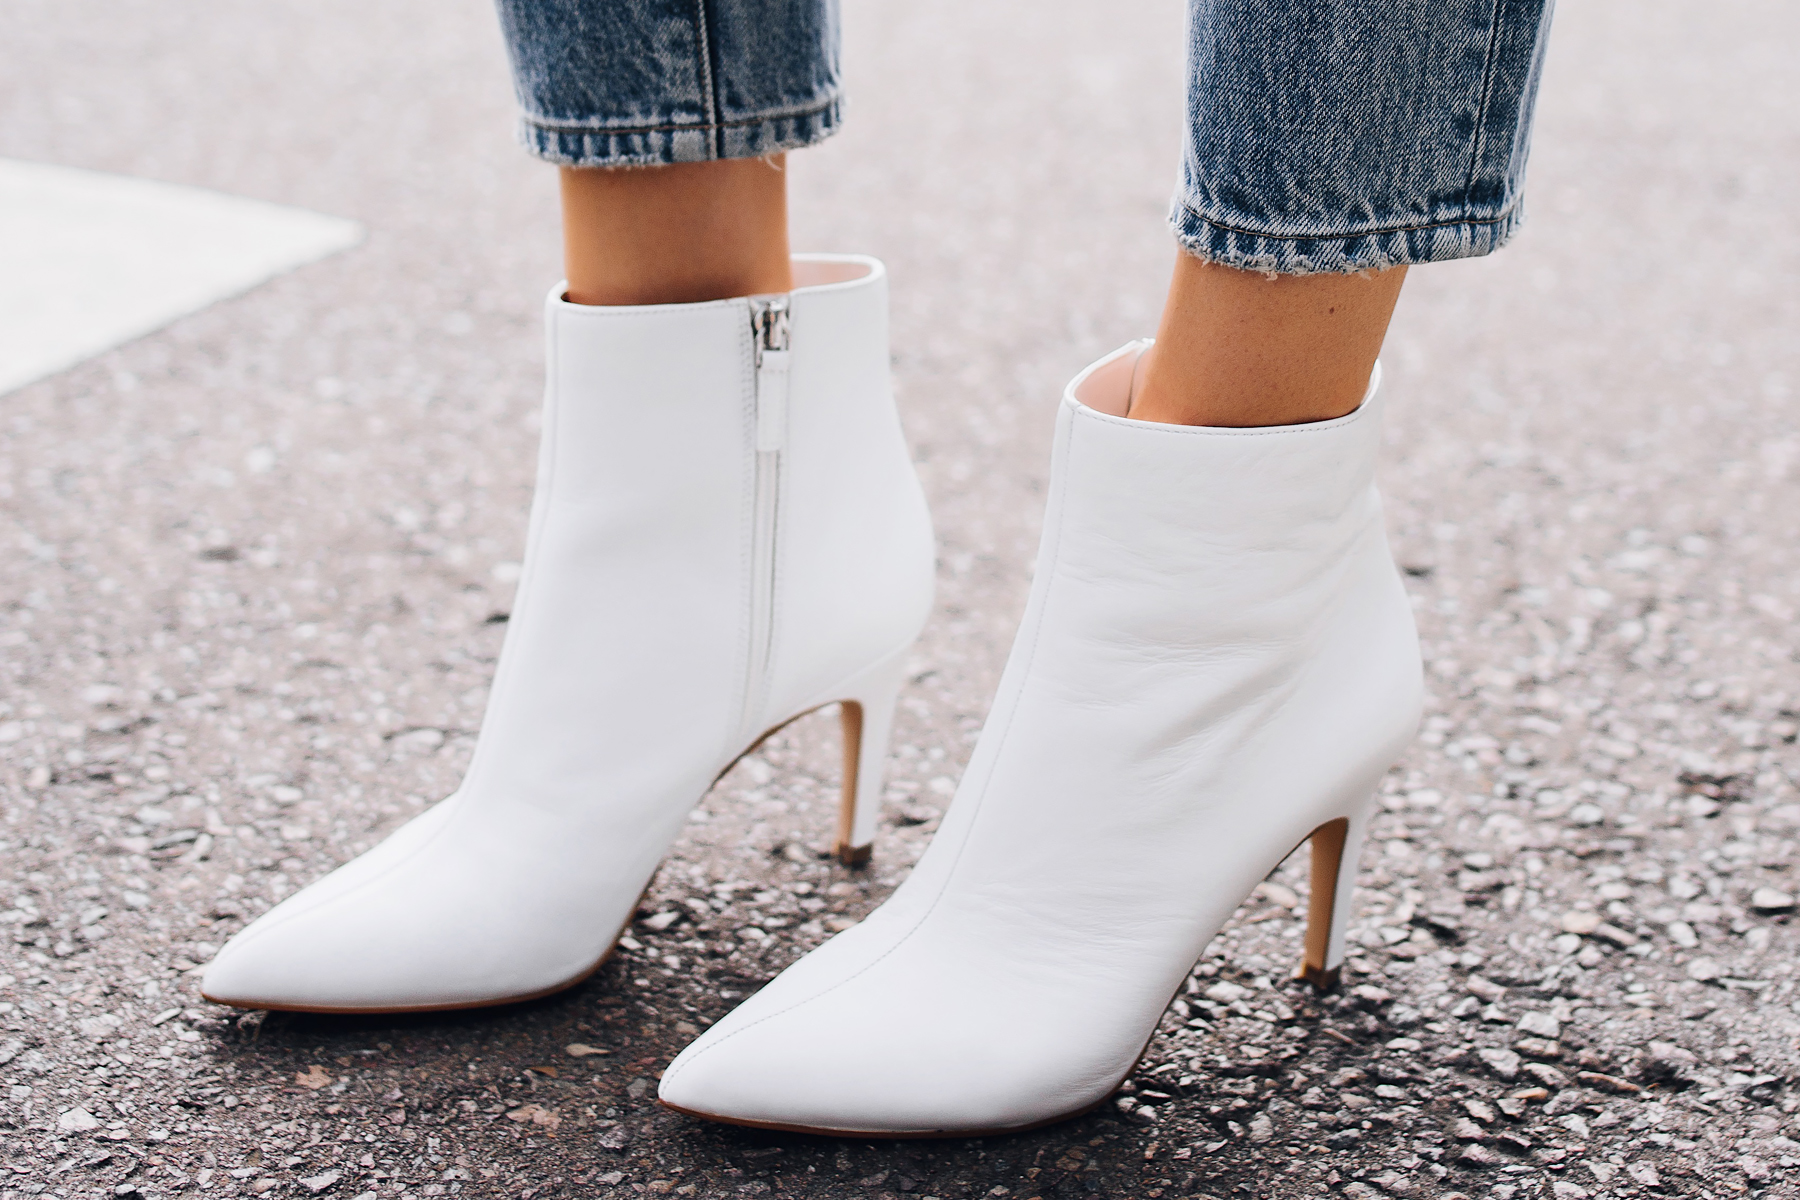 Fashion Jackson White Heeled Ankle Booties Fashion Jackson San Diego Fashion Blogger Street Style